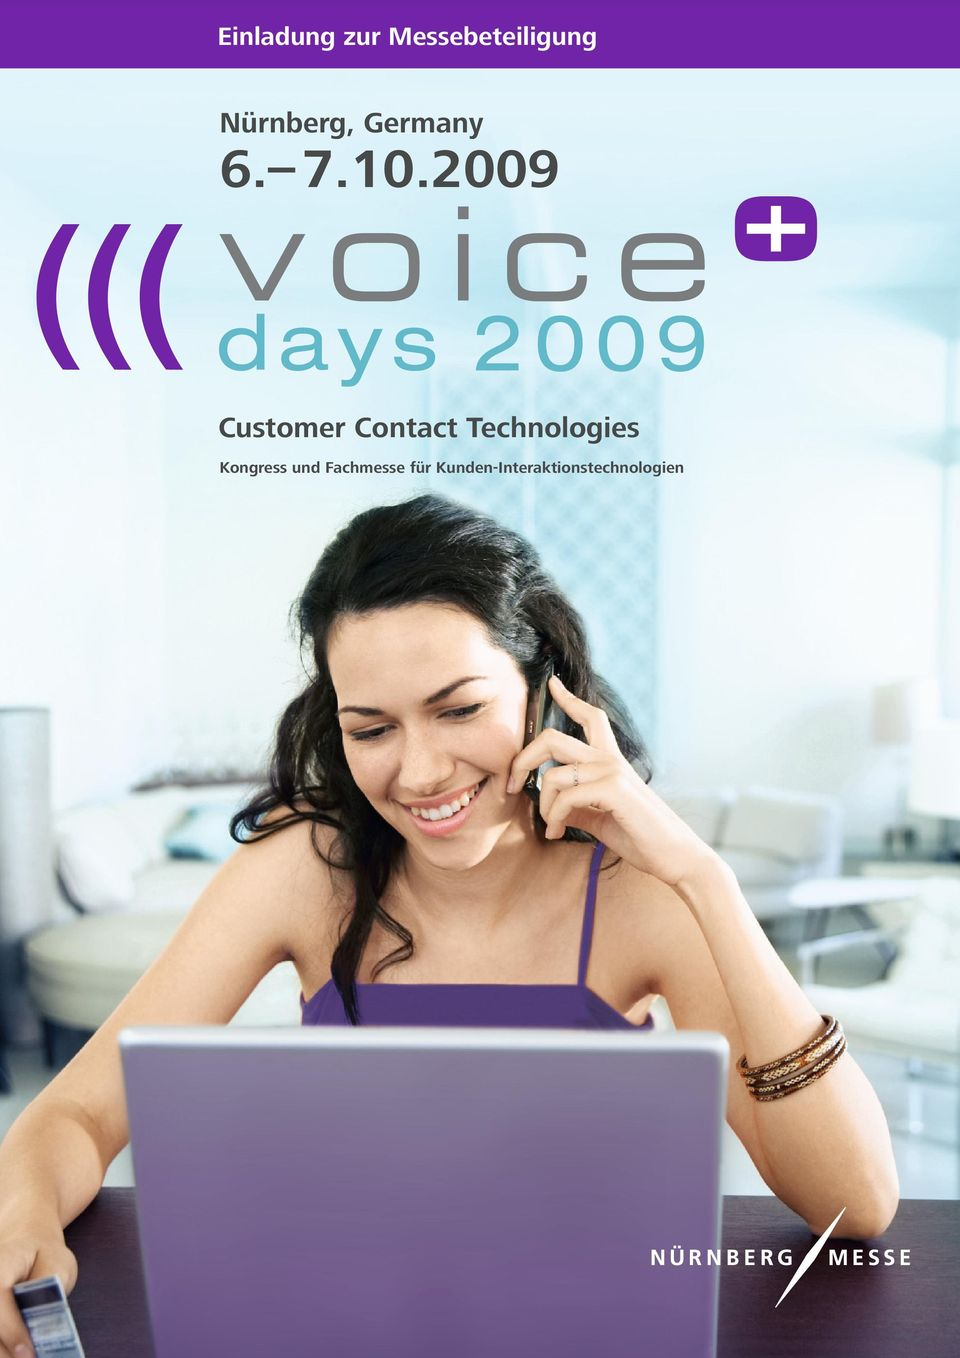 2009 Customer Contact Technologies